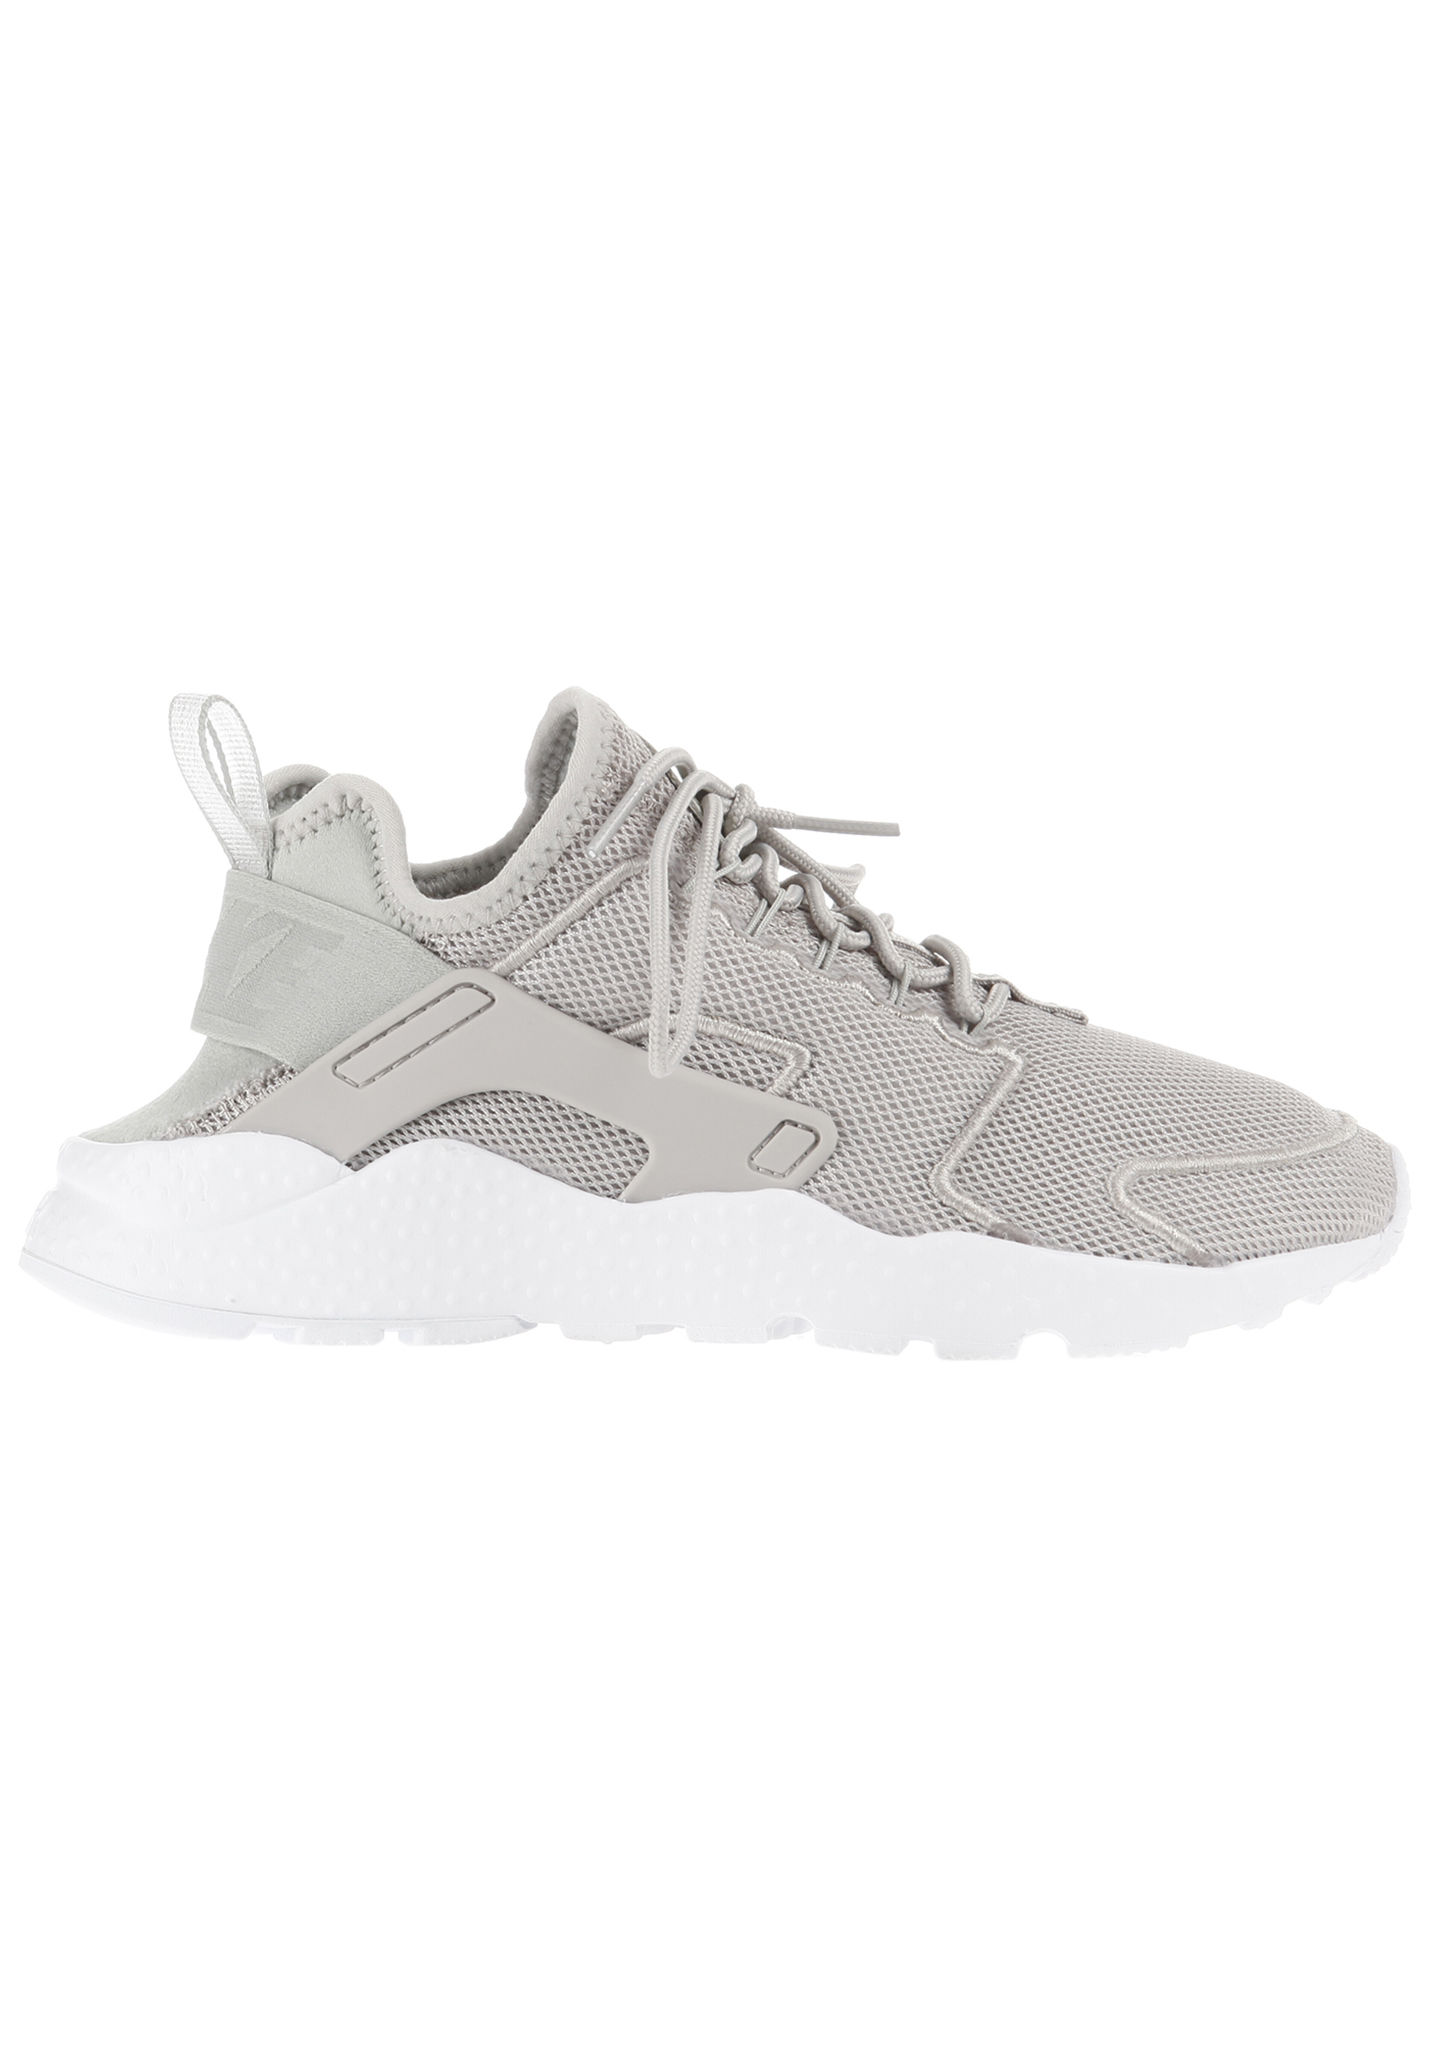 c1079c9971a7 NIKE SPORTSWEAR Air Huarache Run Ultra BR - Sneakers for Women - Grey -  Planet Sports